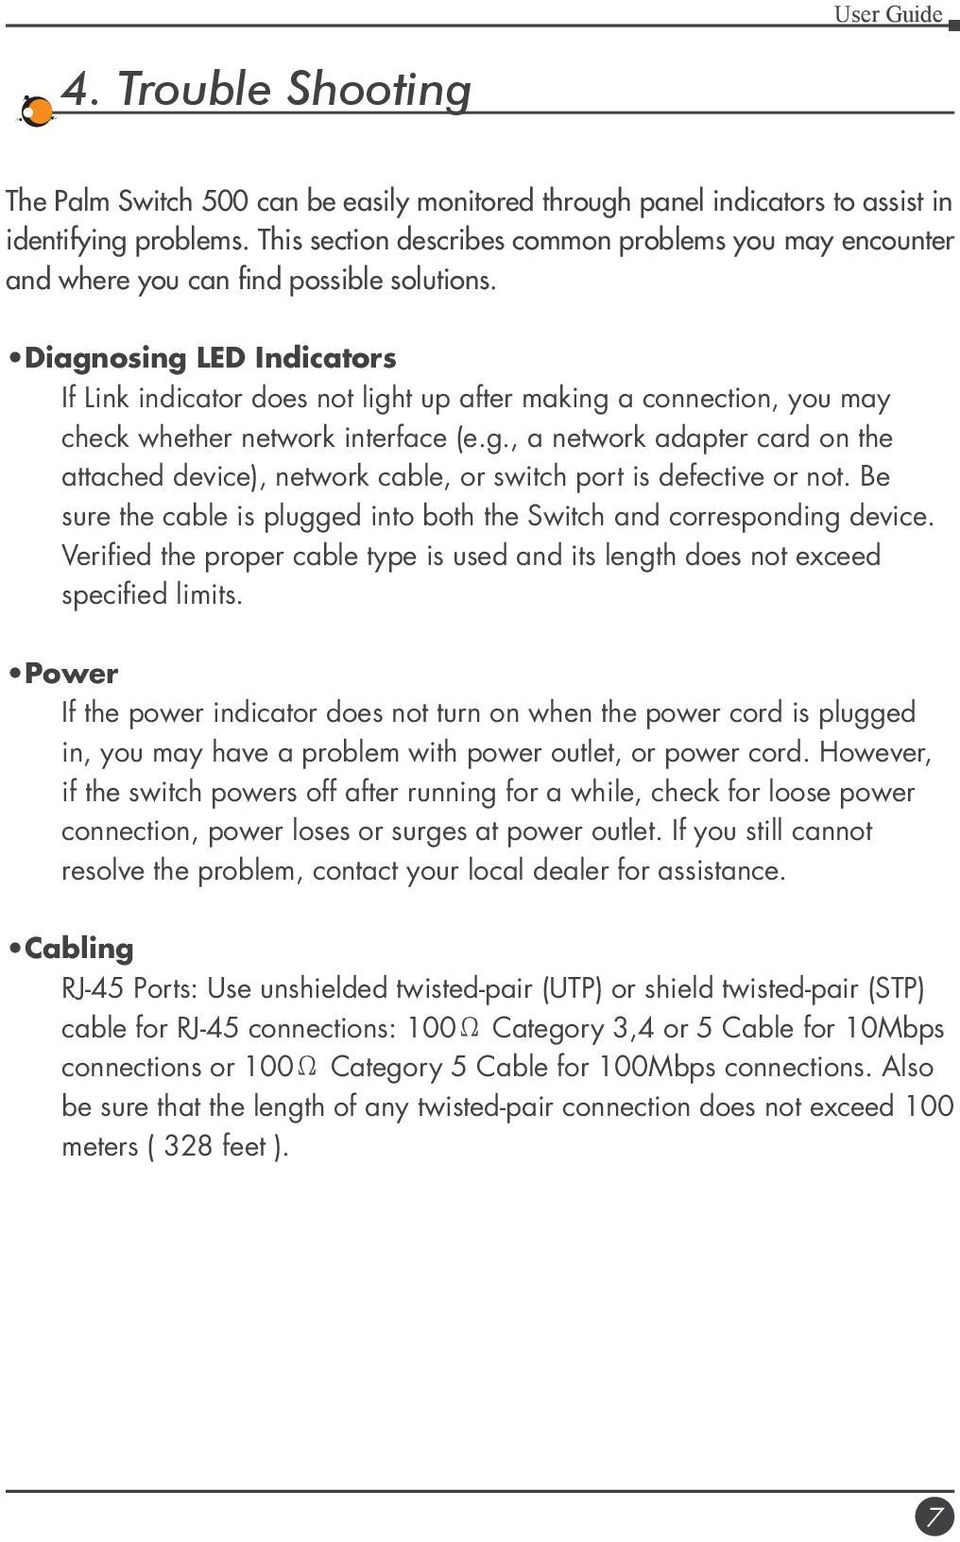 Diagnosing LED Indicators If Link indicator does not light up after making a connection, you may check whether network interface (e.g., a network adapter card on the attached device), network cable, or switch port is defective or not.